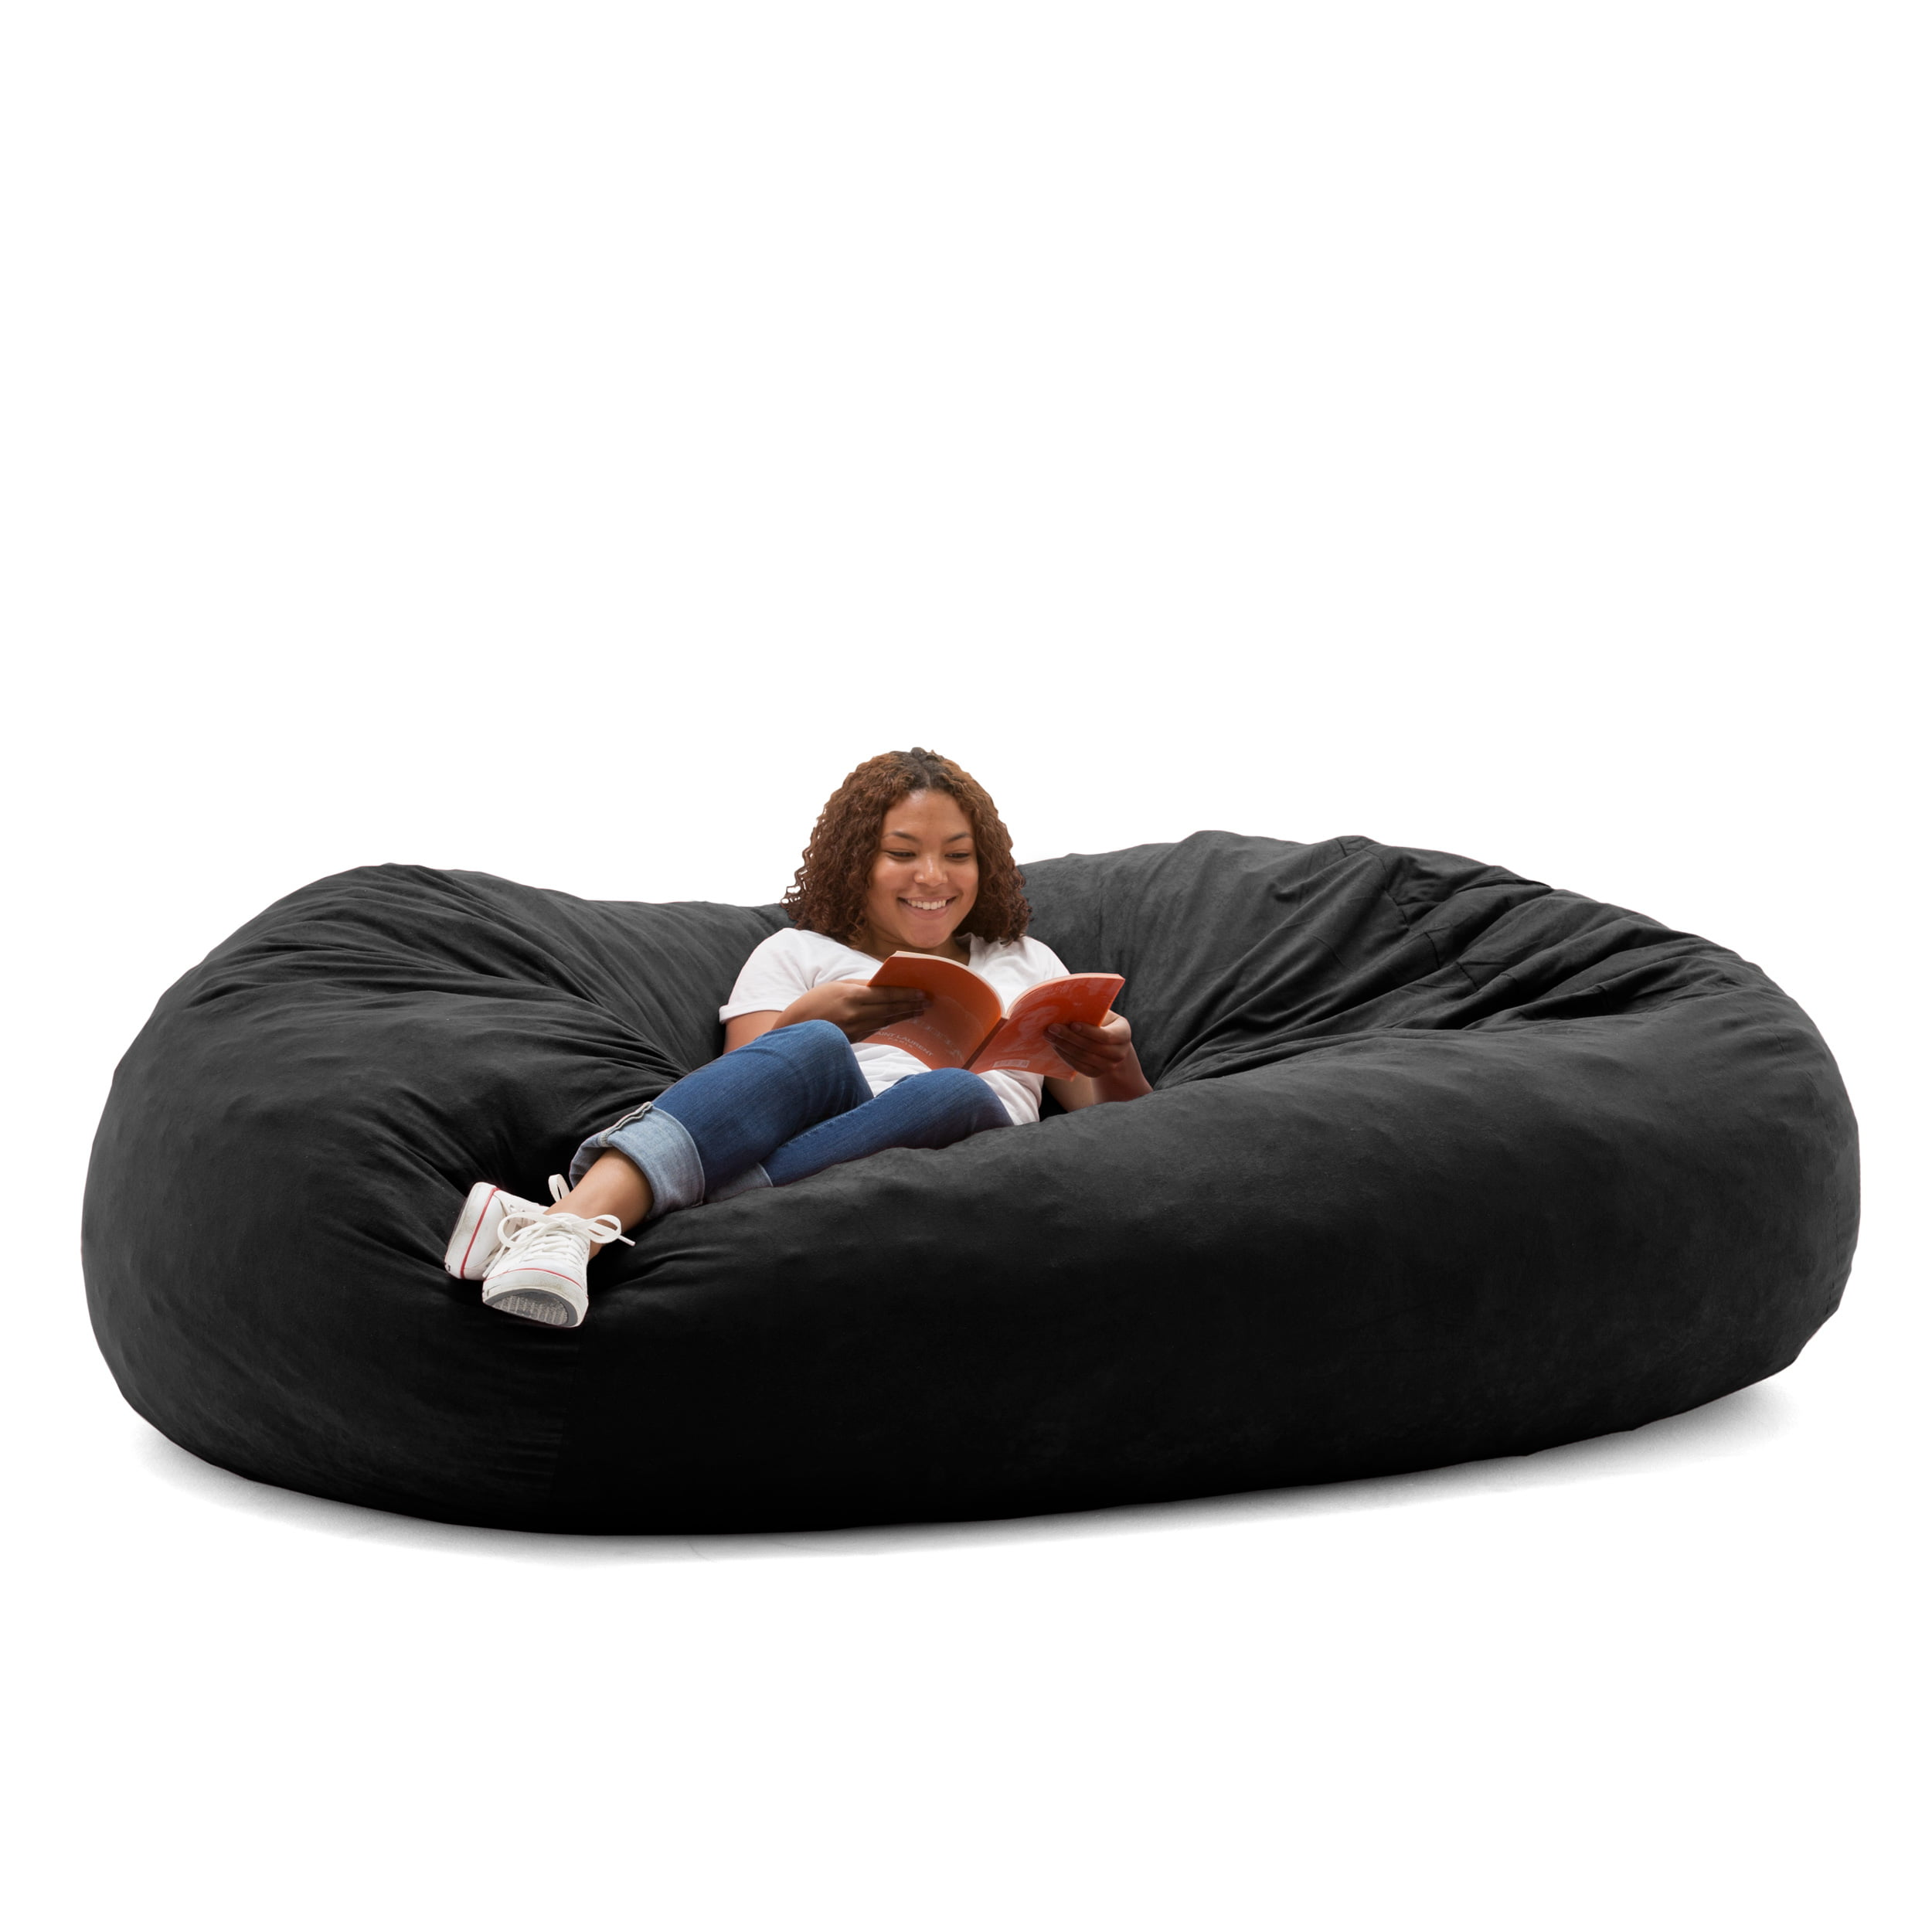 Enjoyable Big Joe Xxl 7 Fuf Bean Bag Chair Multiple Colors Fabrics Walmart Com Beatyapartments Chair Design Images Beatyapartmentscom